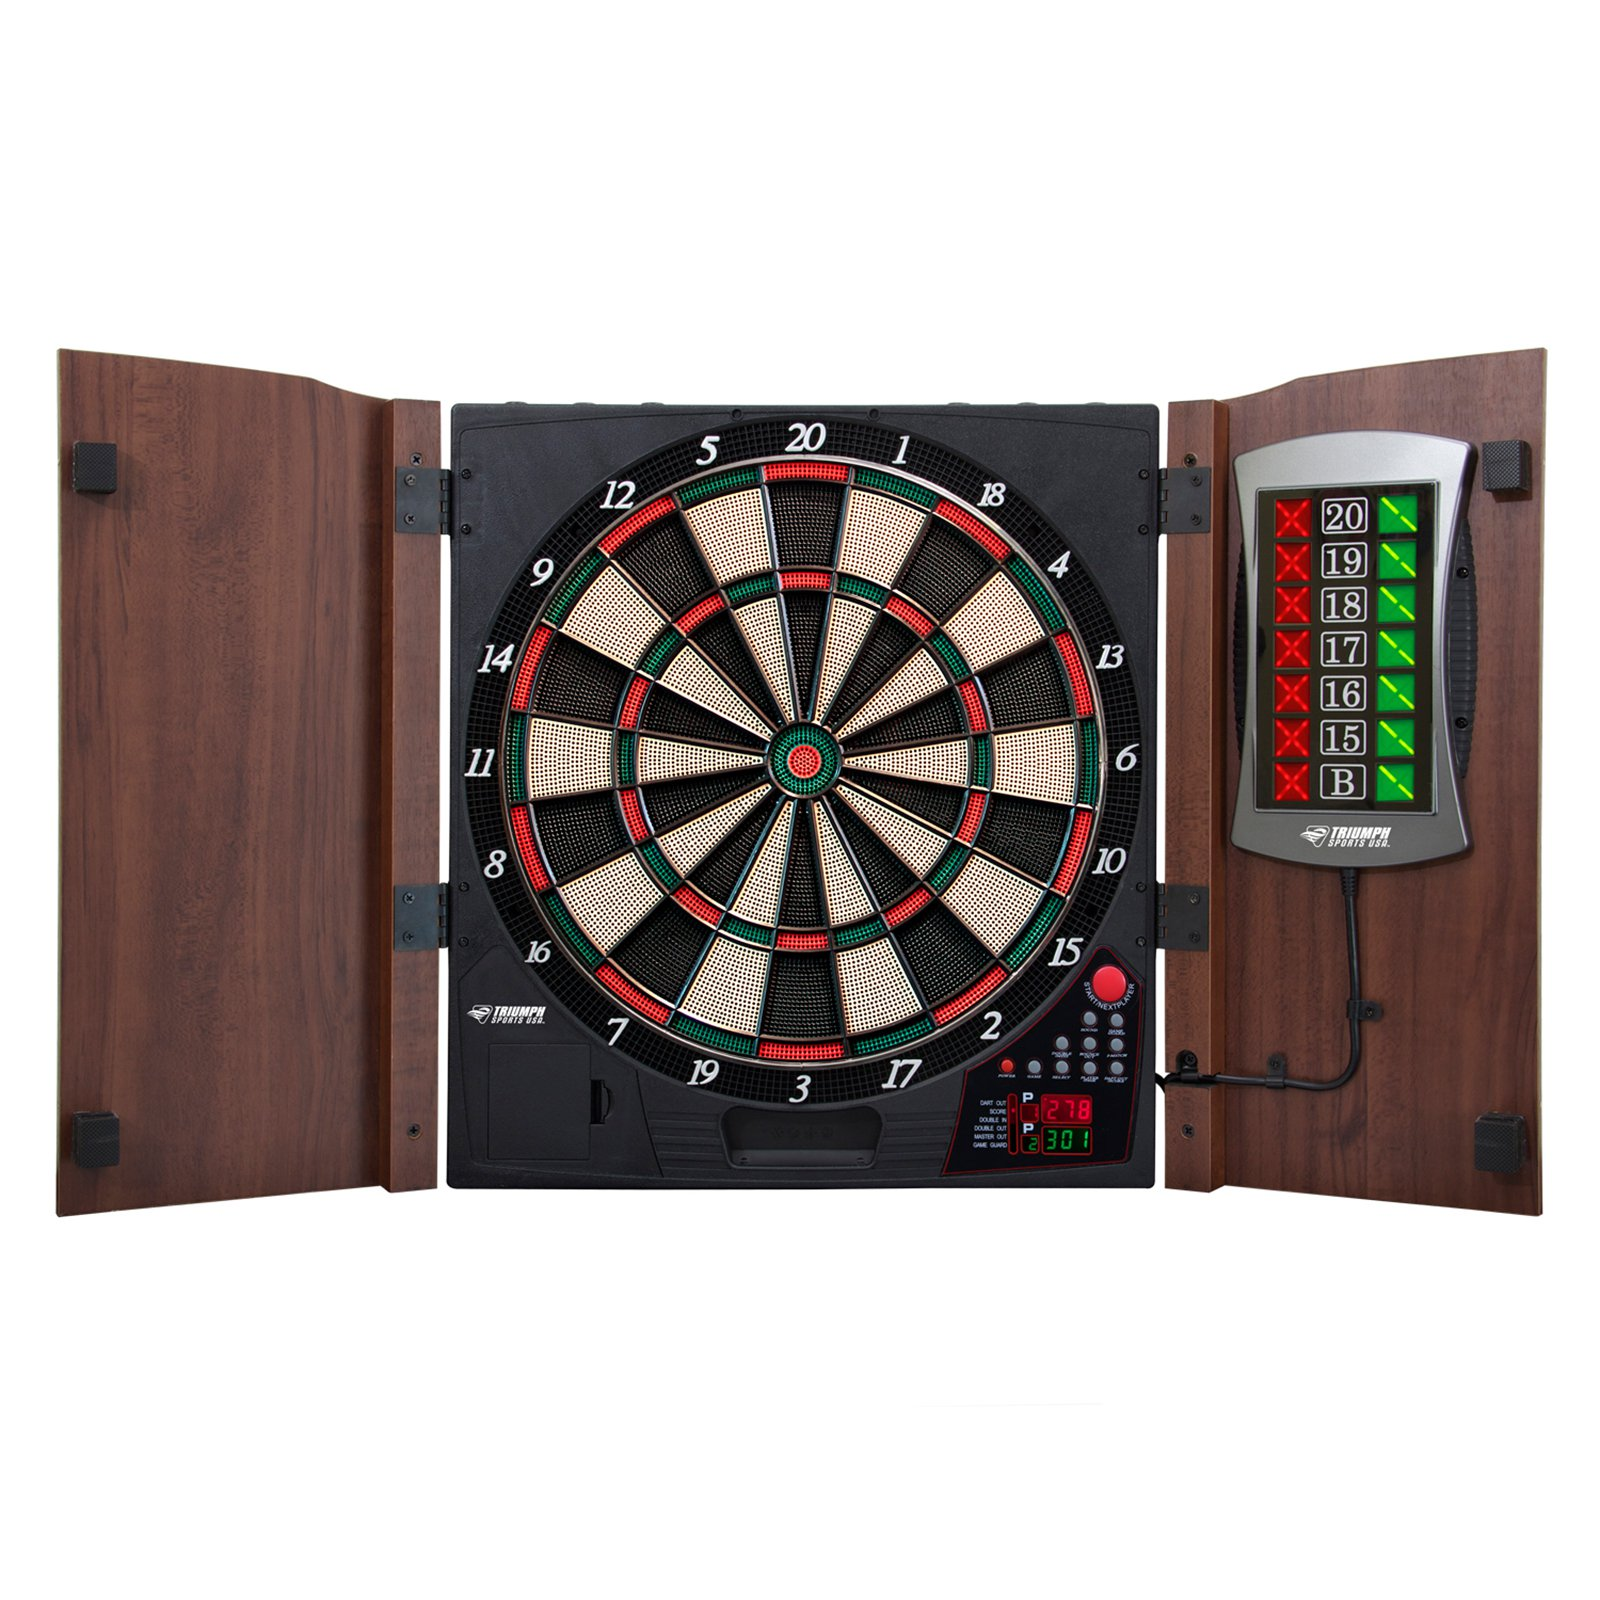 TG King's Head Value Dartboard Cabinet Set, Dark Wood - Walmart.com